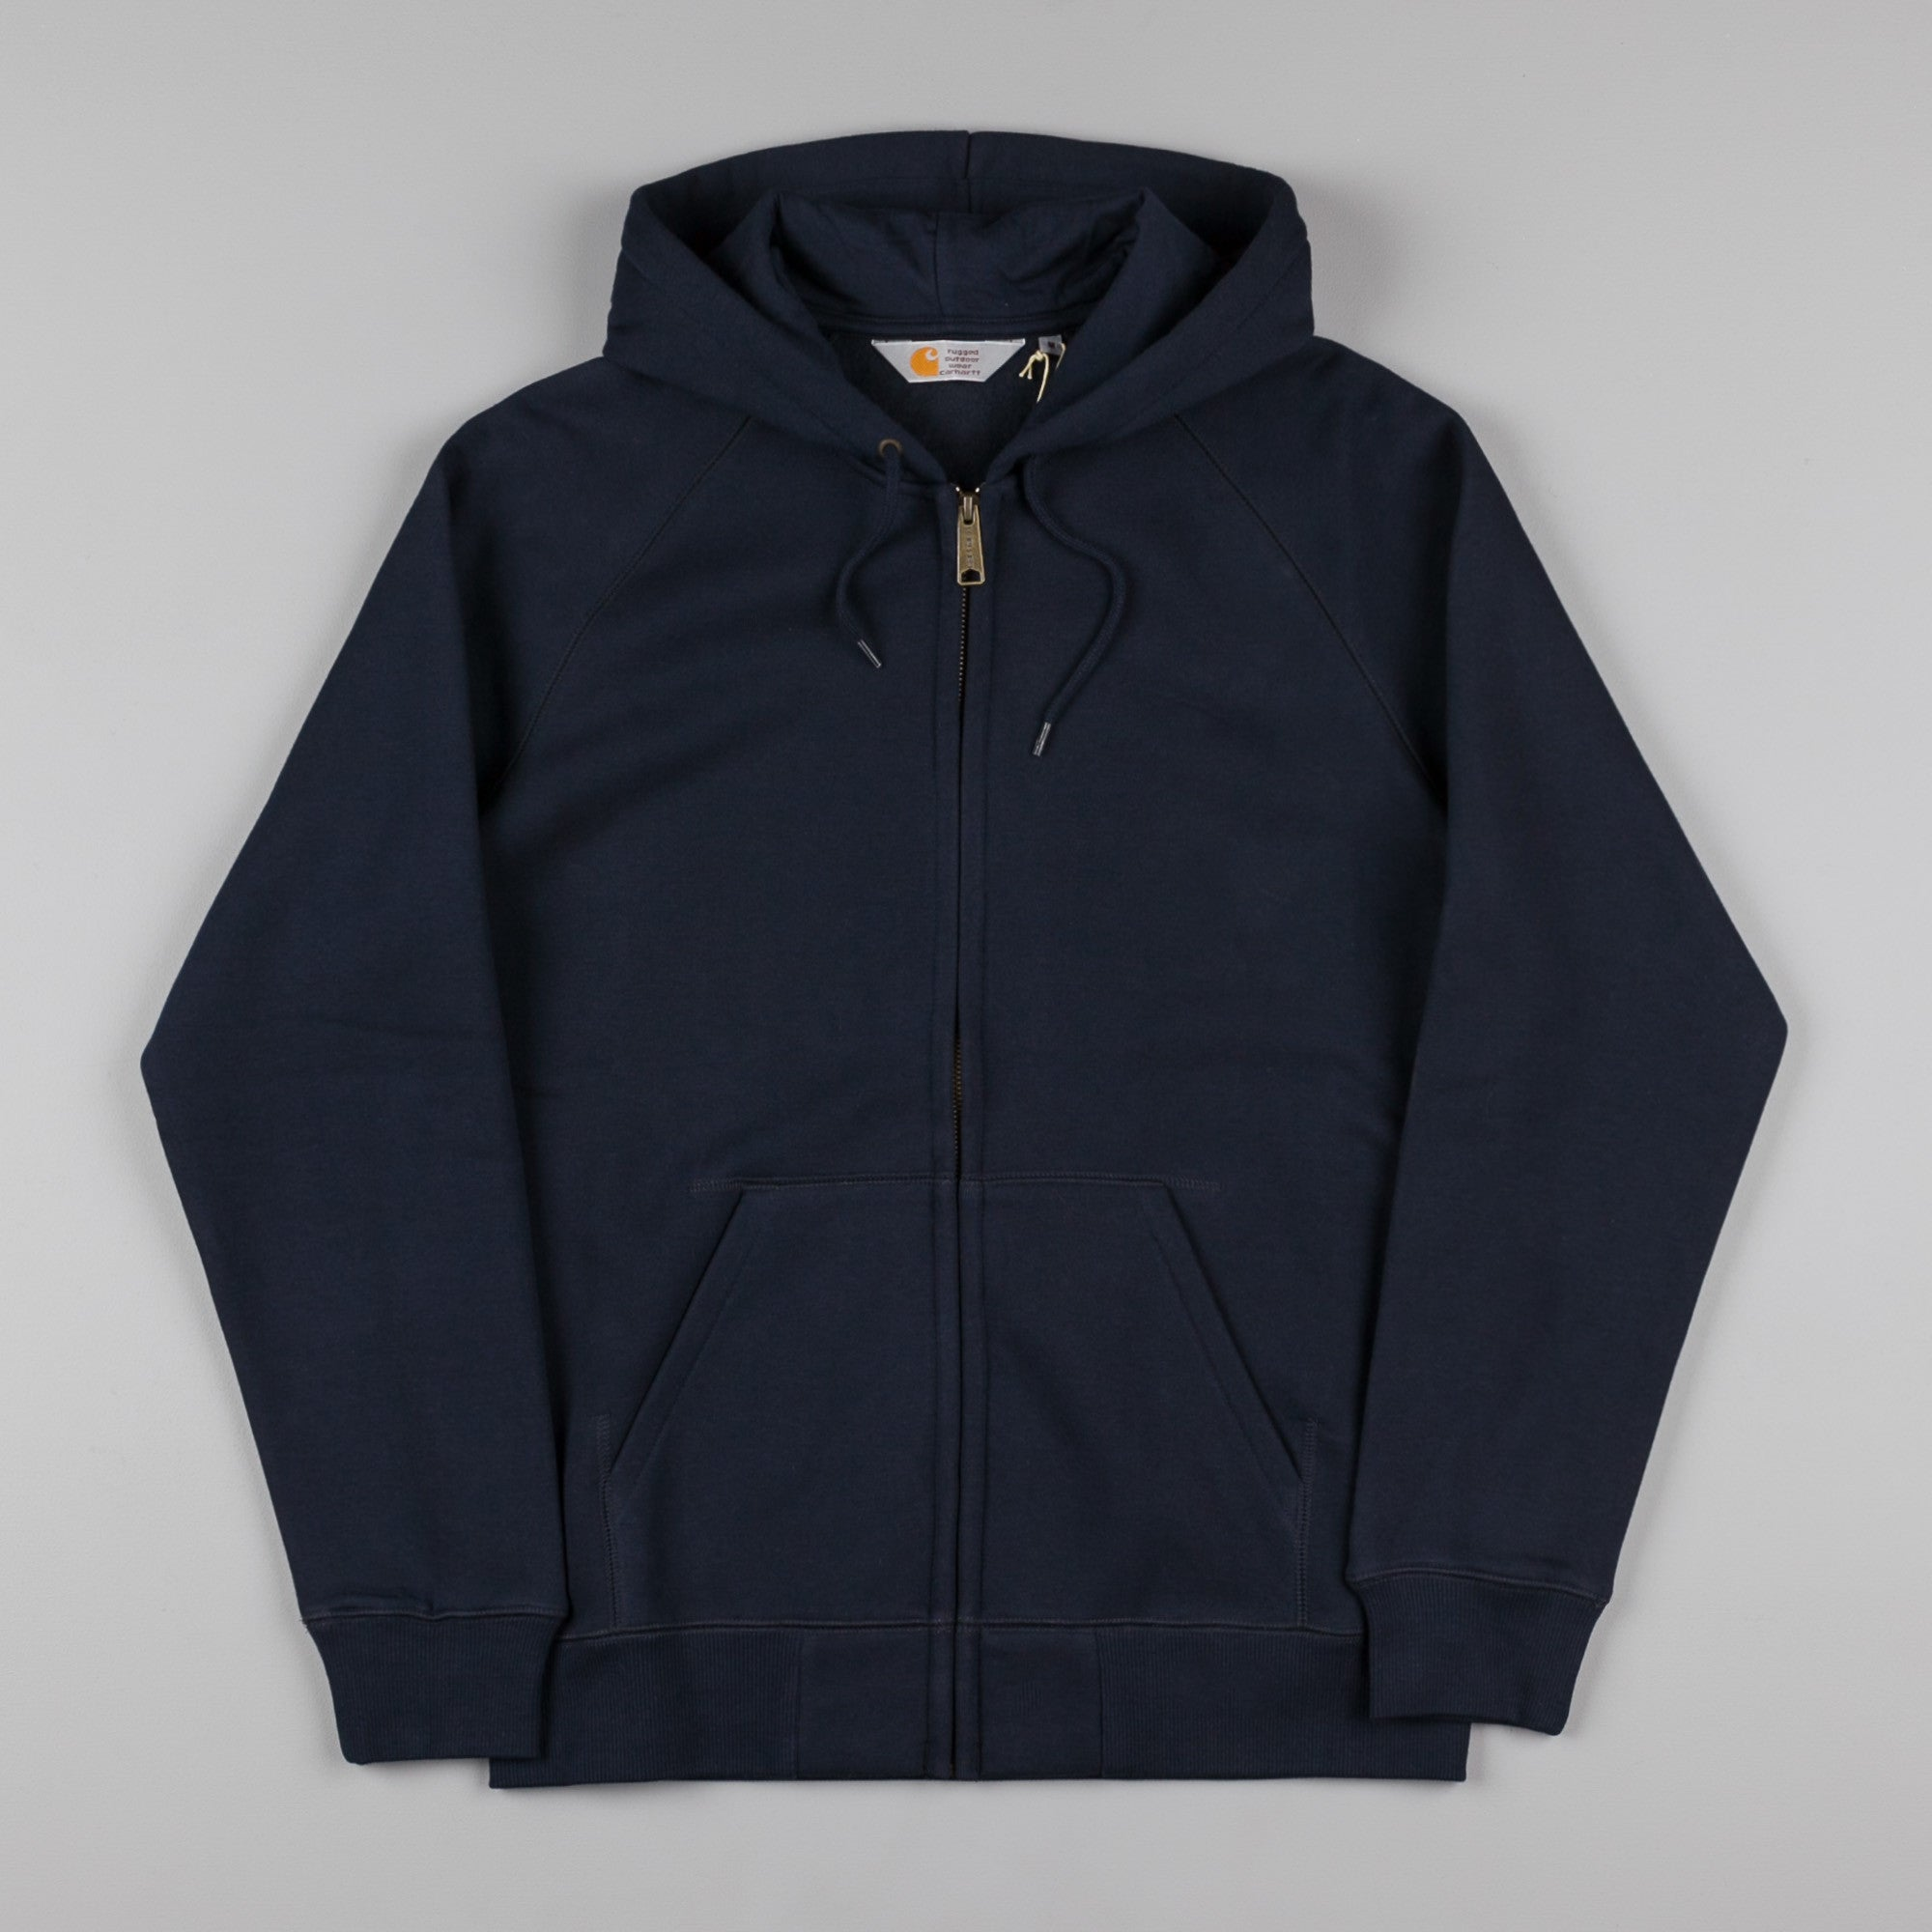 Carhartt Chase Hooded Jacket - Navy